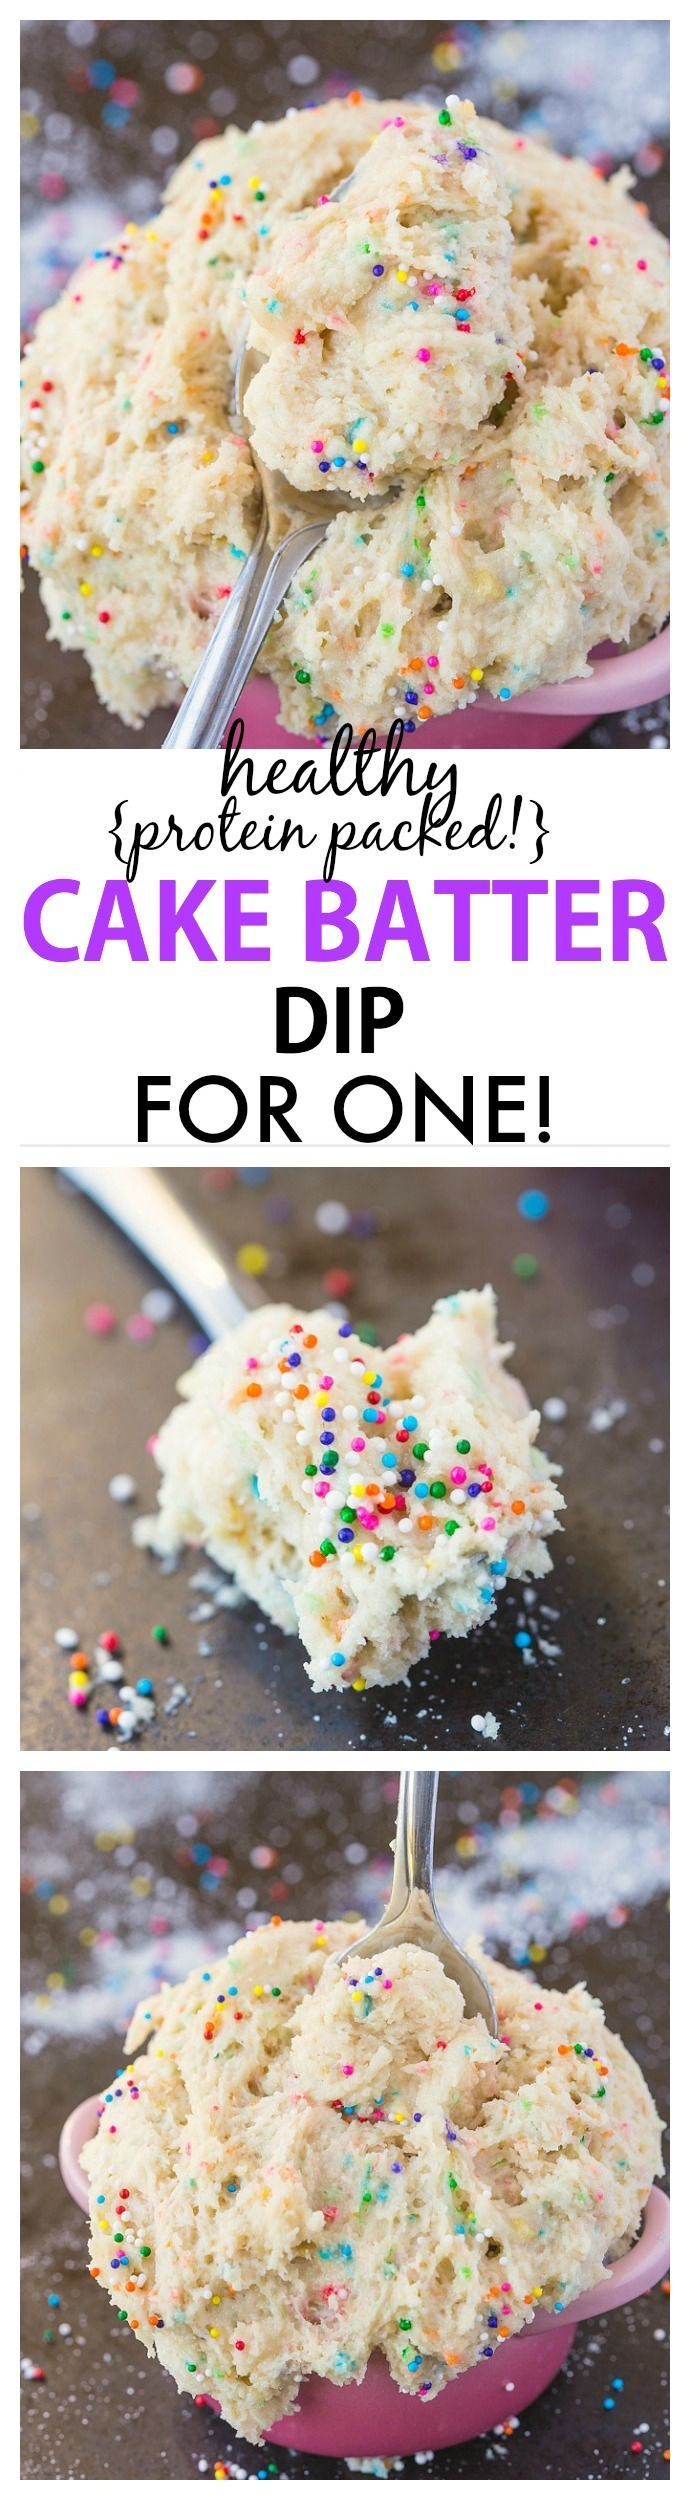 Healthy Cake Batter dip for ONE recipe- Delicious, creamy and packing over 20 grams of protein, it only takes 5 minutes to whip up! Sinfully nutritious! {vegan, gluten free, sugar free + paleo options} - thebigmansworld.com: